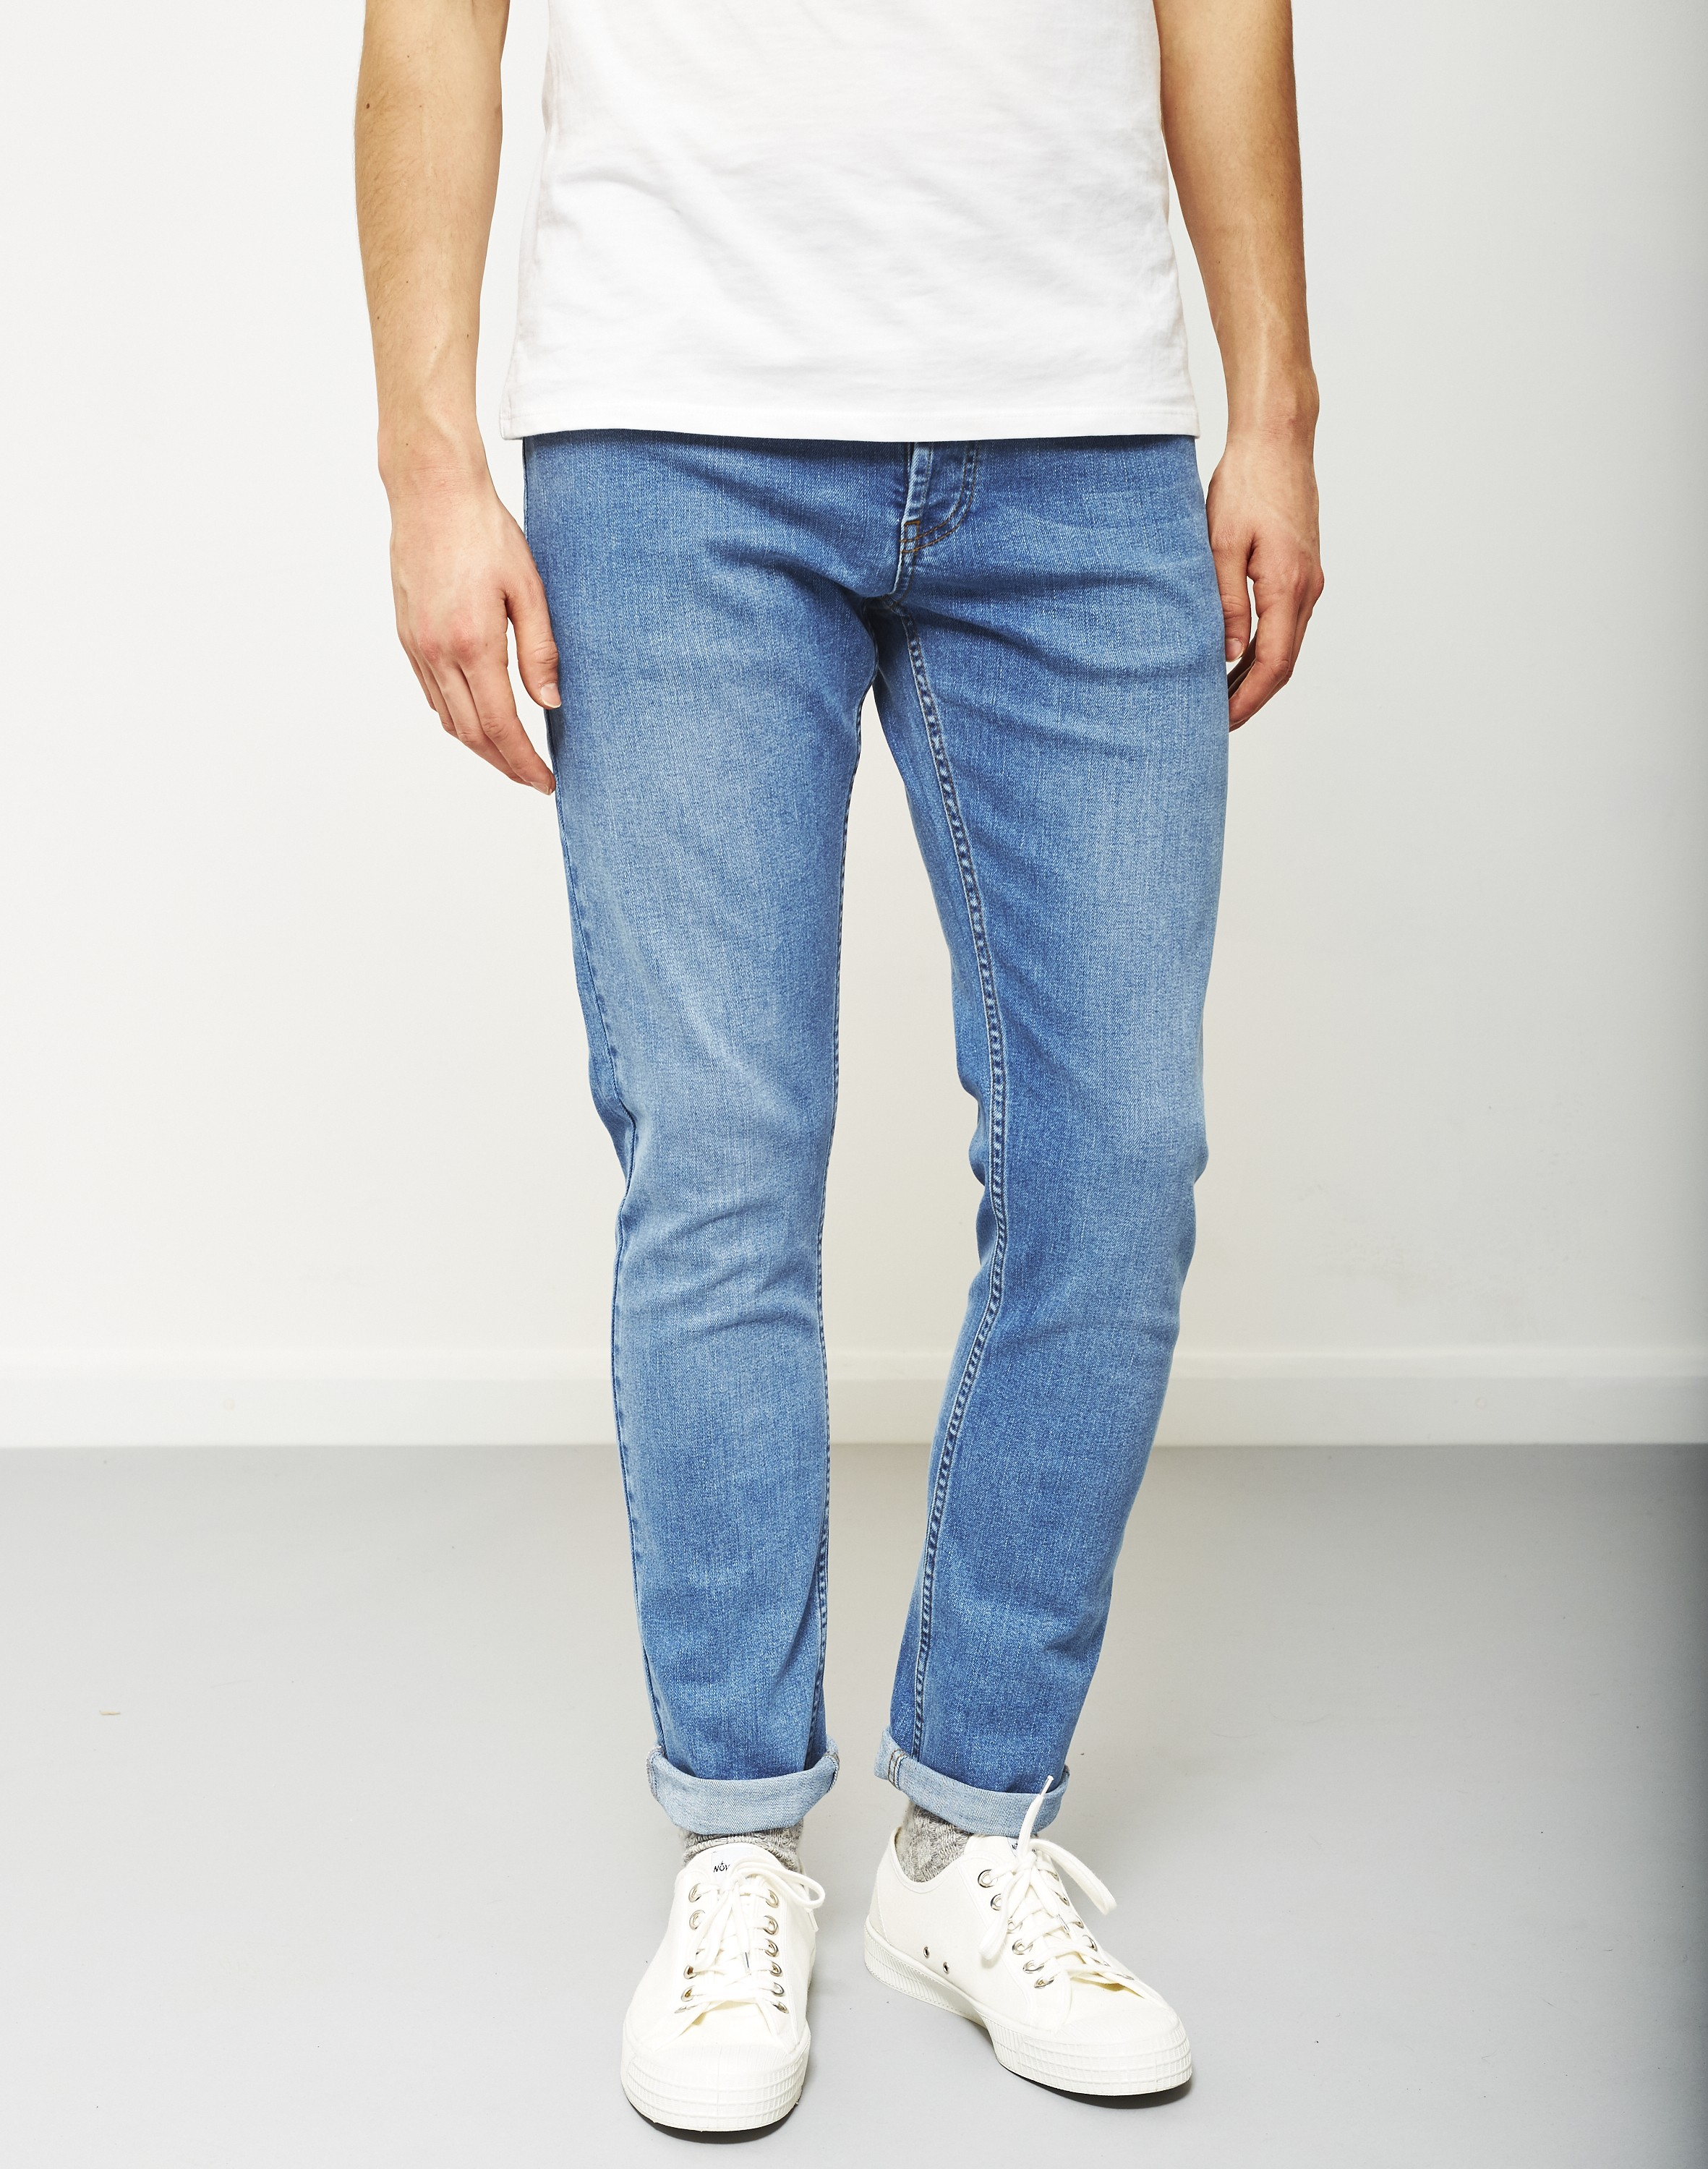 skinny jeans for men the idle man slim fit jeans stone wash mens RHOFLXX